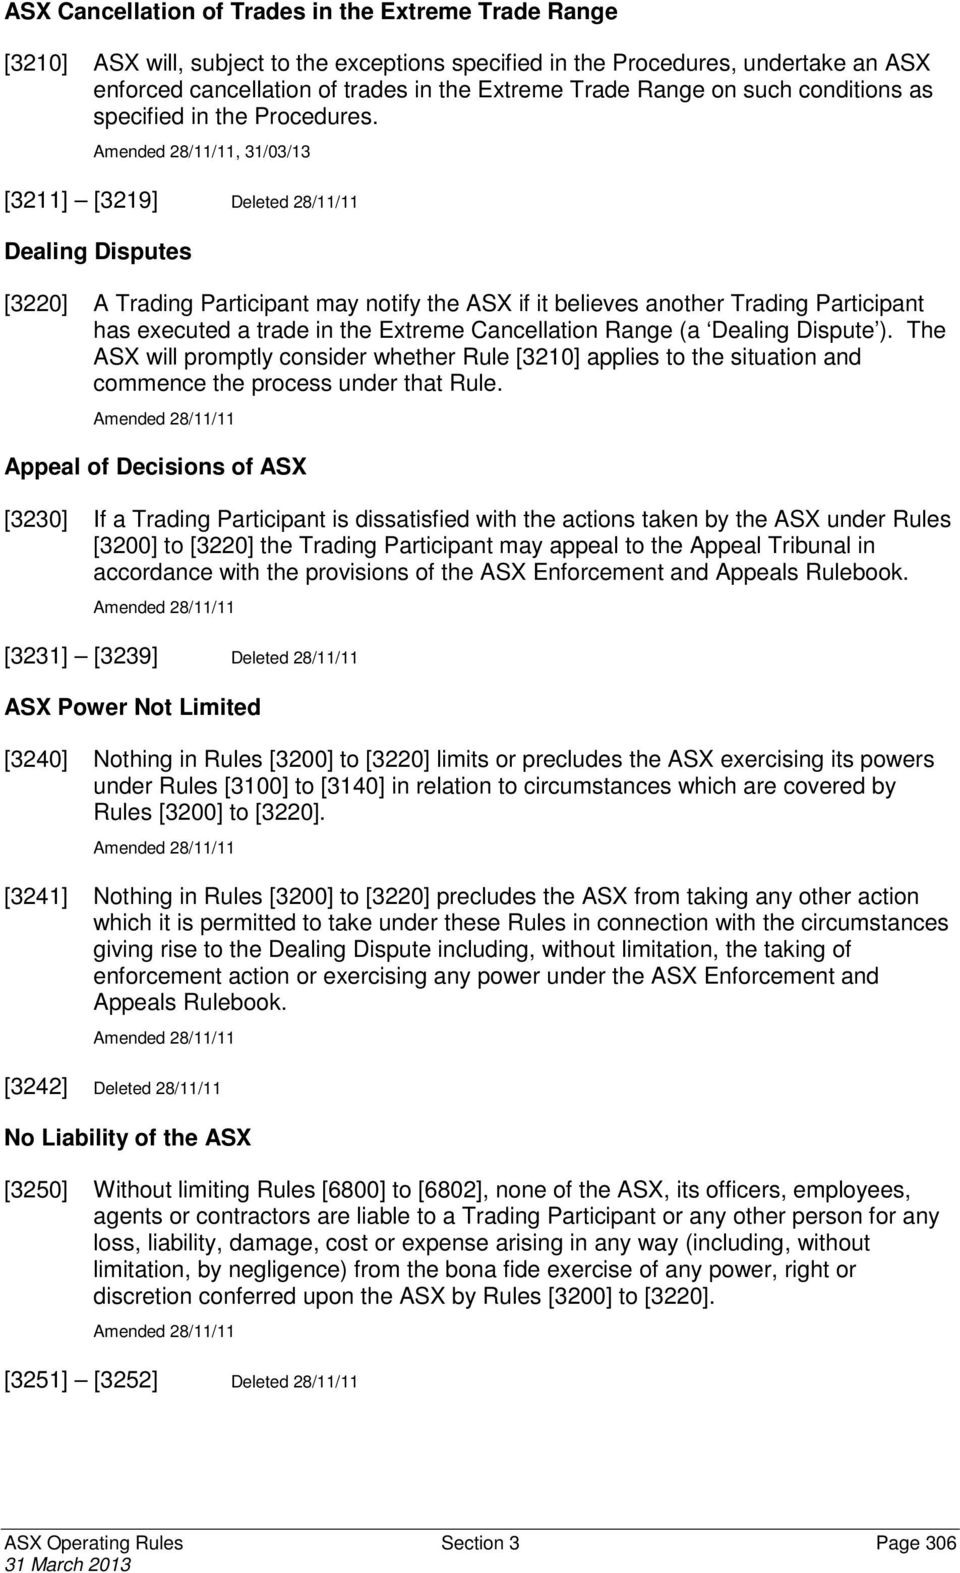 Amended 28/11/11, 31/03/13 [3211] [3219] Deleted 28/11/11 Dealing Disputes [3220] A Trading Participant may notify the ASX if it believes another Trading Participant has executed a trade in the